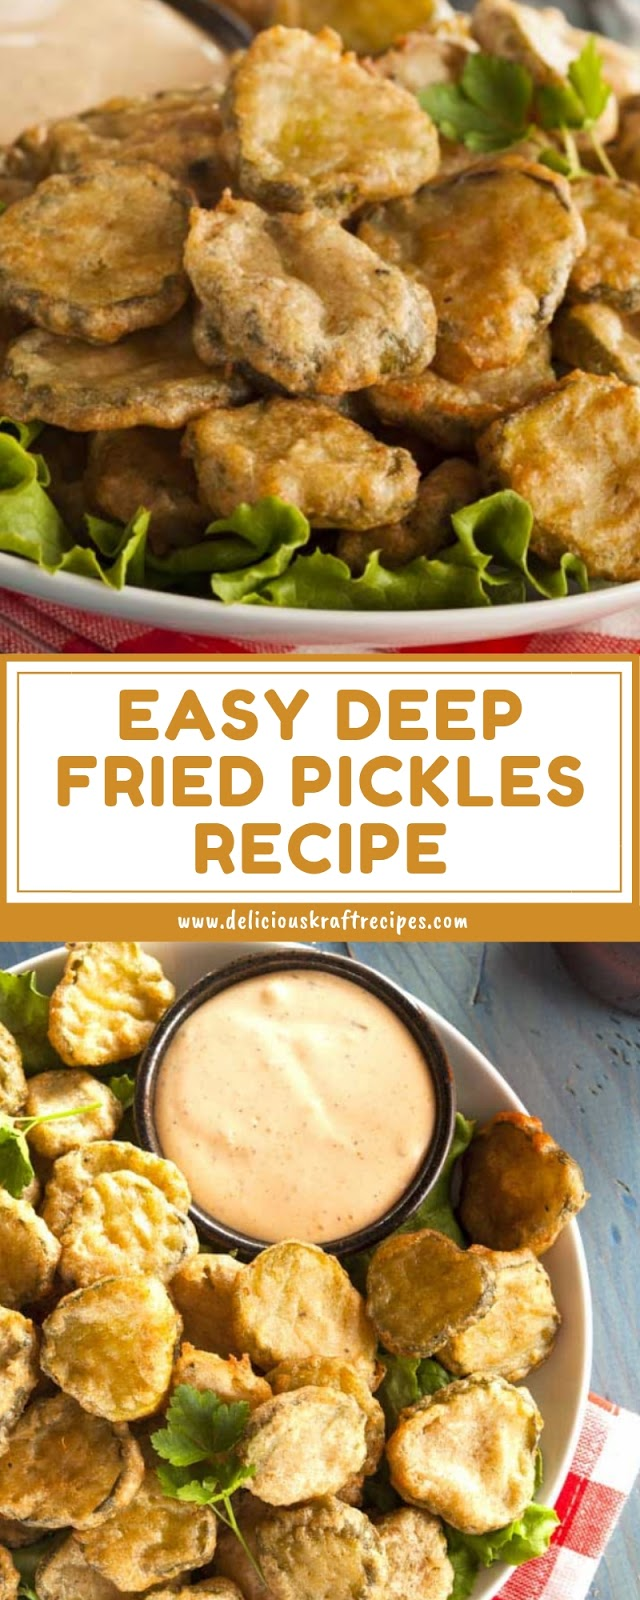 EASY DEEP FRIED PICKLES RECIPE